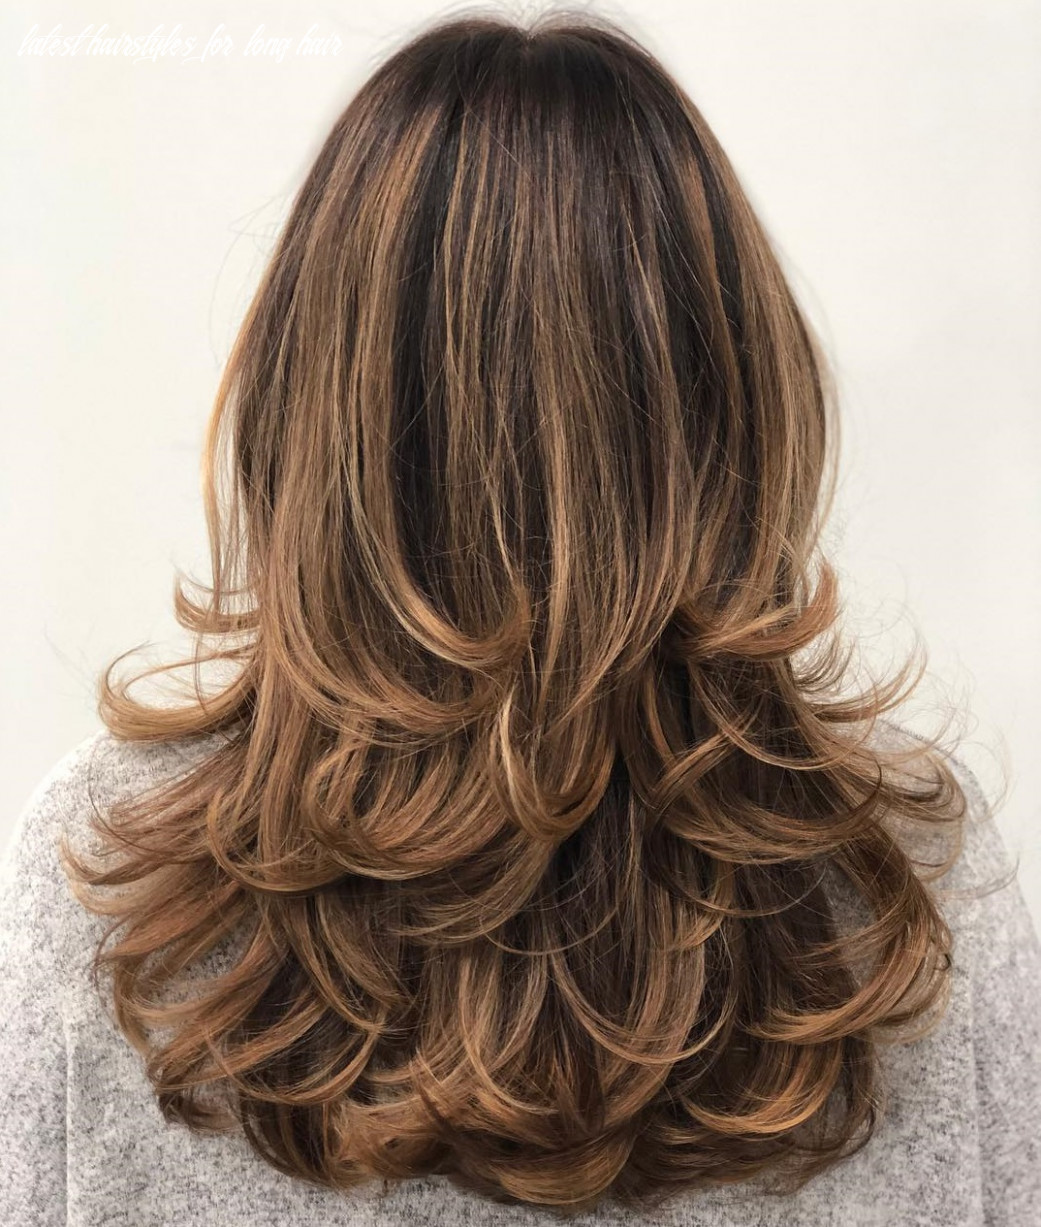 10 new long hairstyles with layers for 10 hair adviser latest hairstyles for long hair